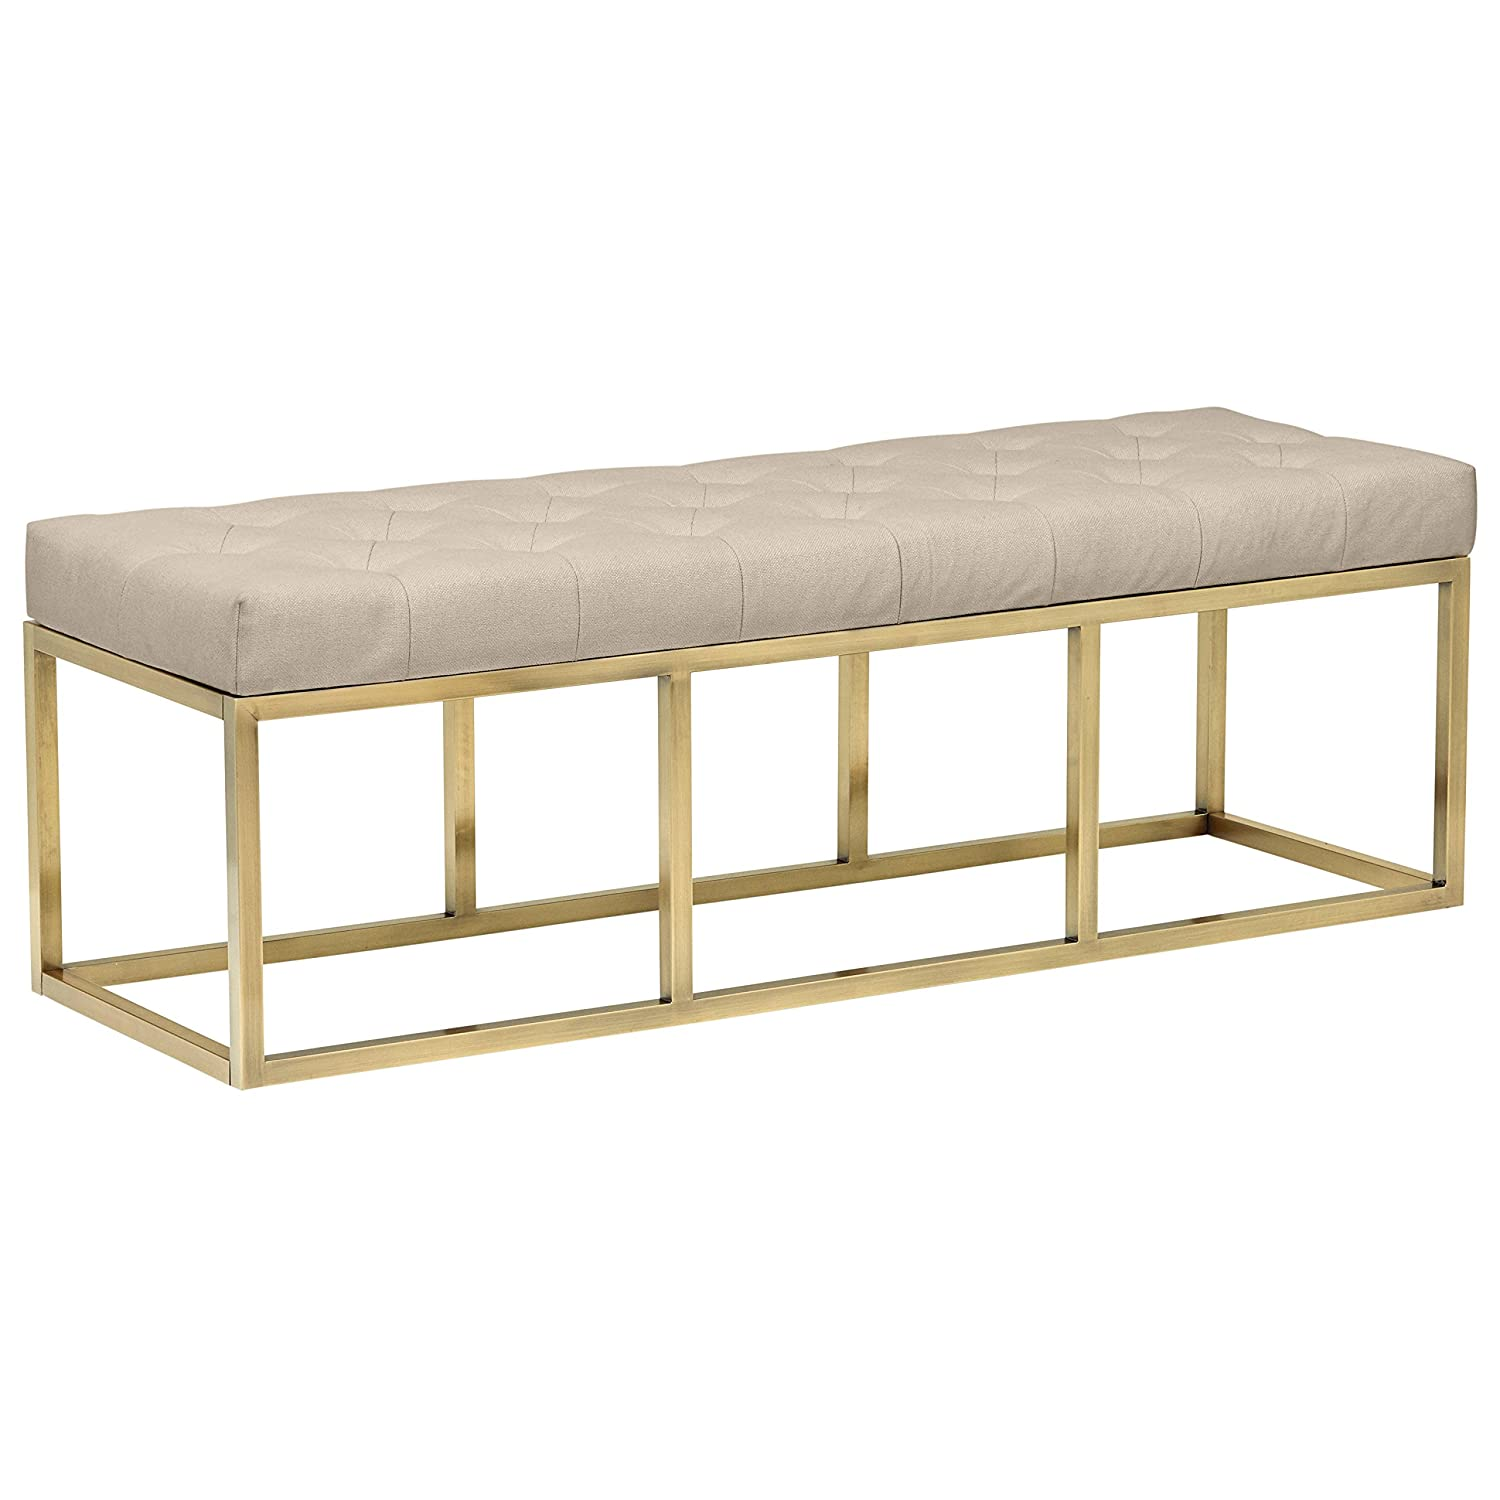 Rivet Glam Tufted Seat Upholstered Bench with Gold Legs , 58 L, Gold Finish